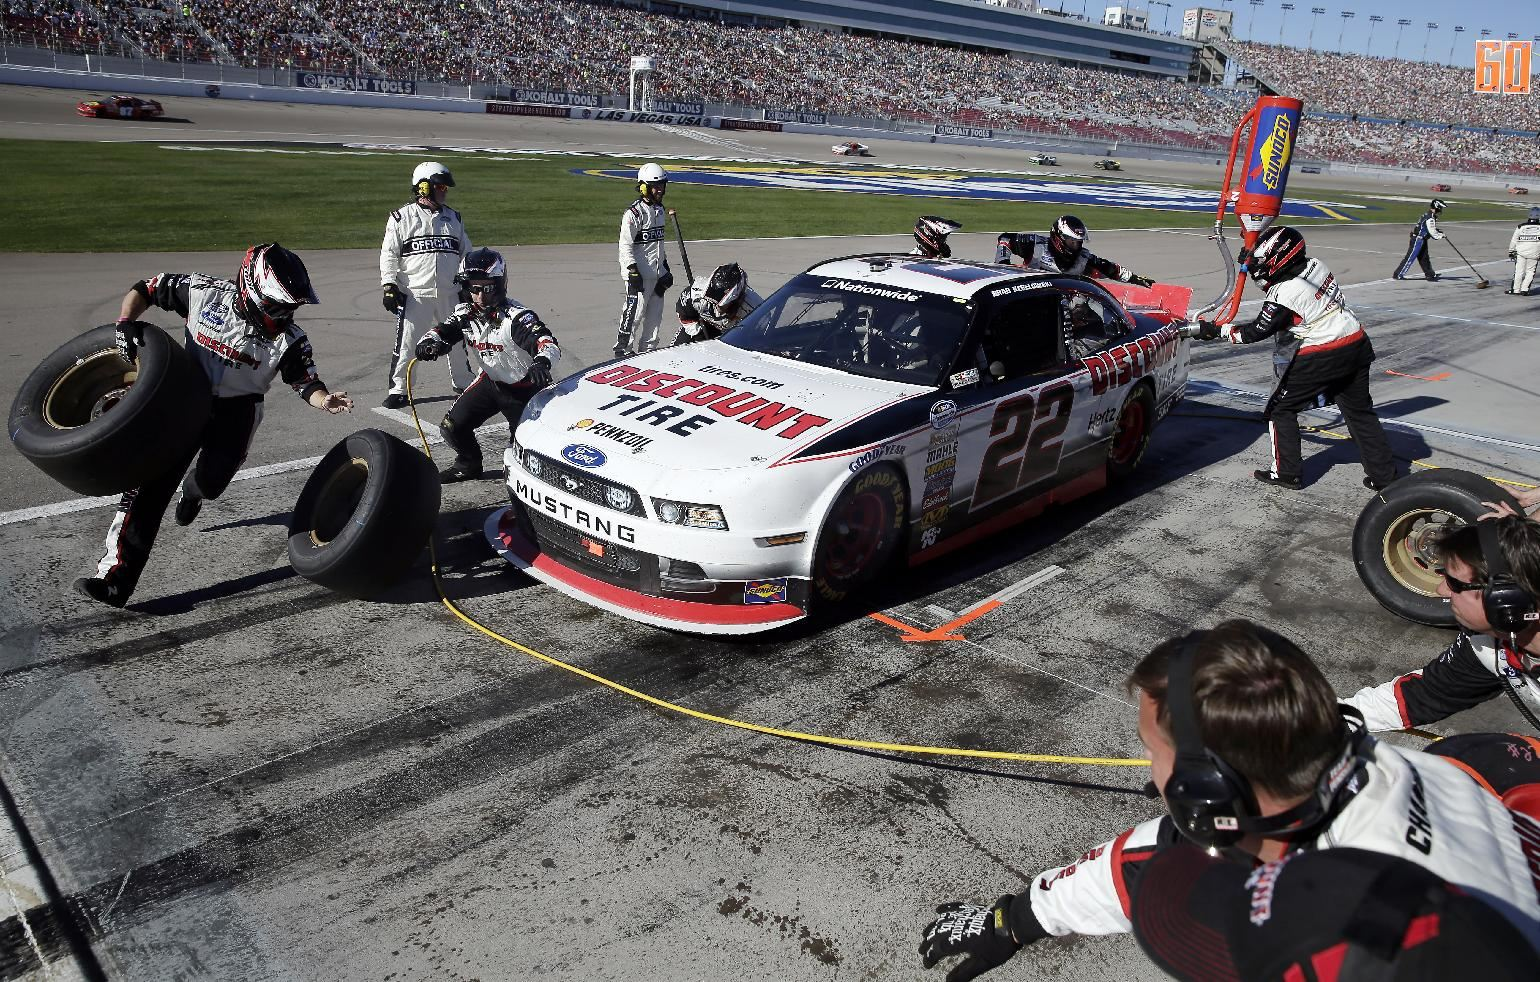 March 8, 2014, in Las Vegas. Keselowski won the race. (AP Photo/Isaac